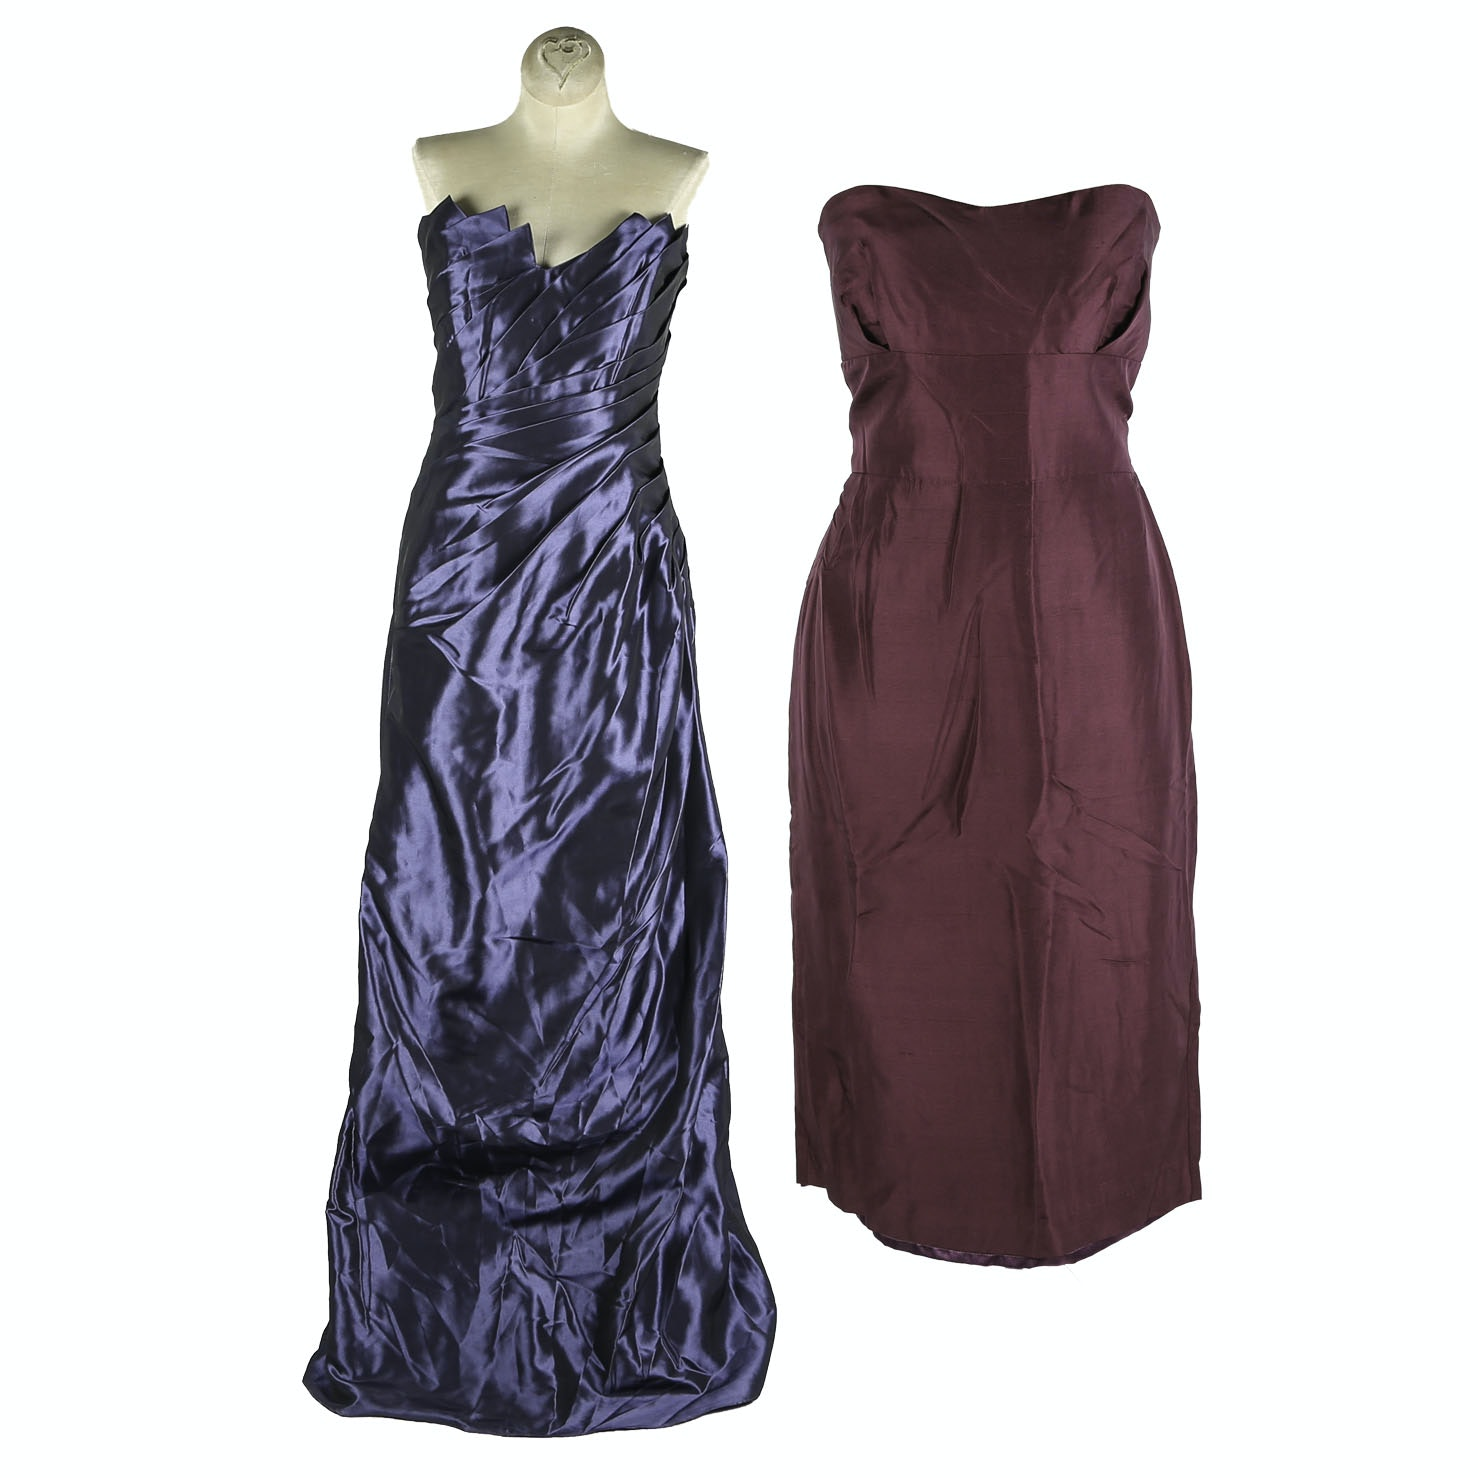 Jenny Yoo Silk Shantung and Simone Carvalli Formal Dresses